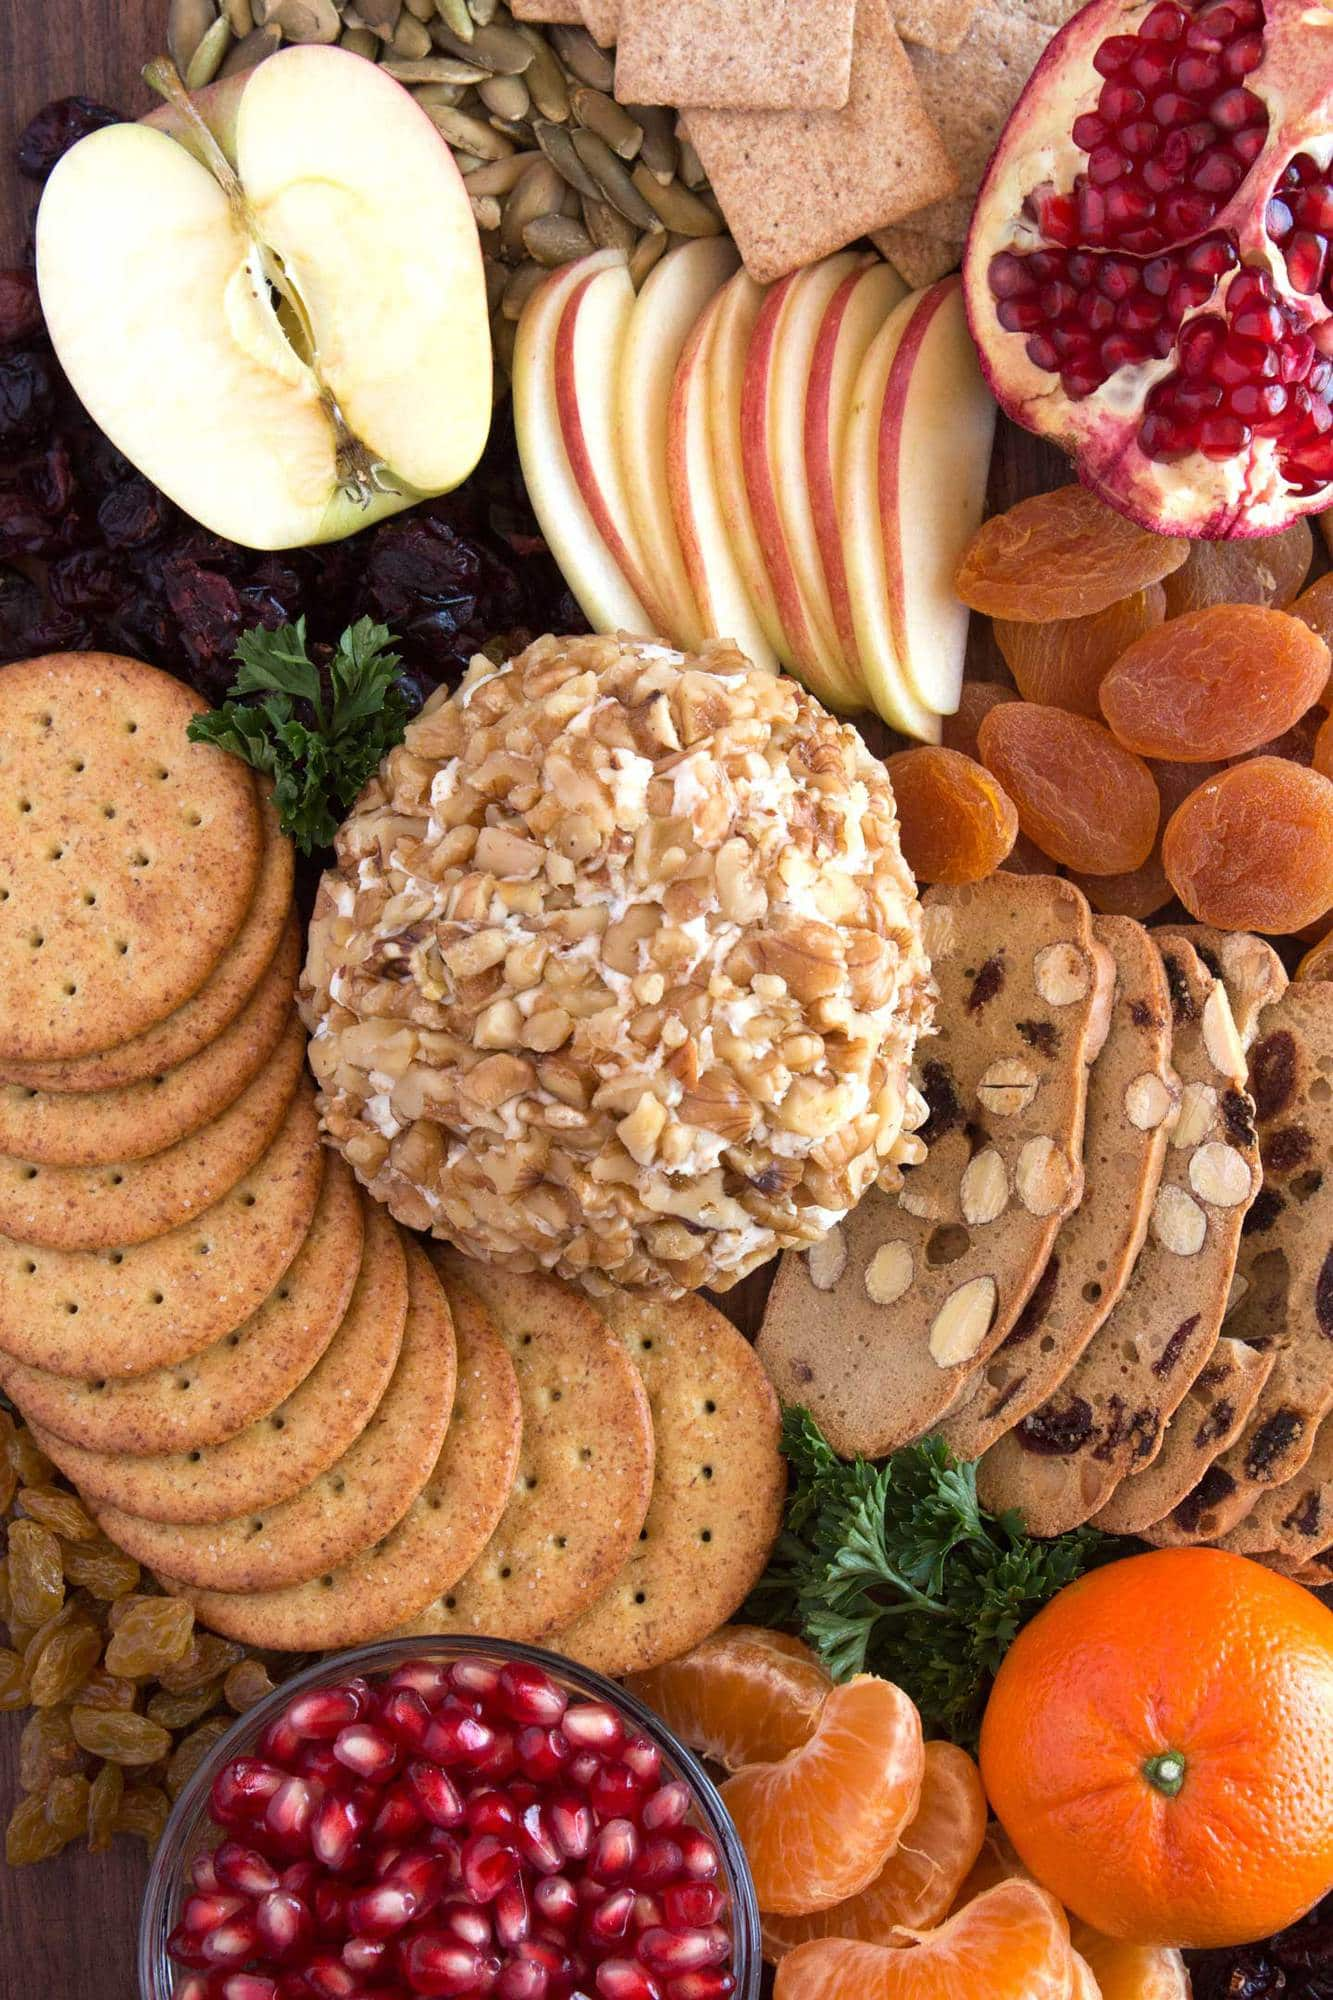 Classic cheese ball on cutting board with crackers, fruit, and parsley.